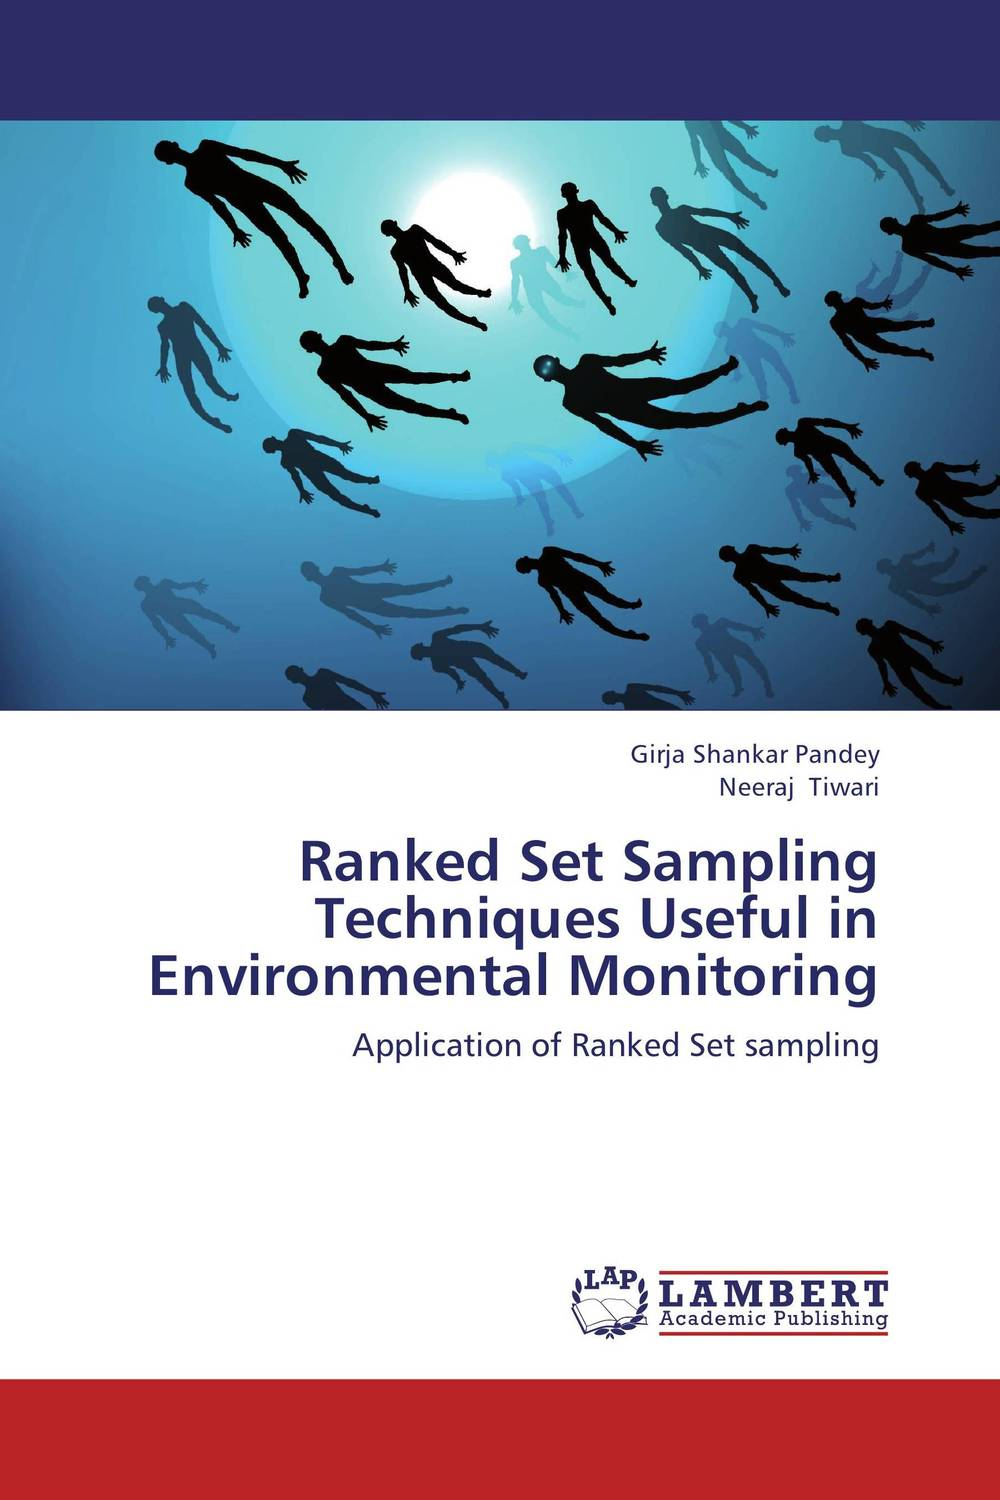 Ranked Set Sampling Techniques Useful in Environmental Monitoring sampling and analysis of environmental chemical pollutants a complete guide